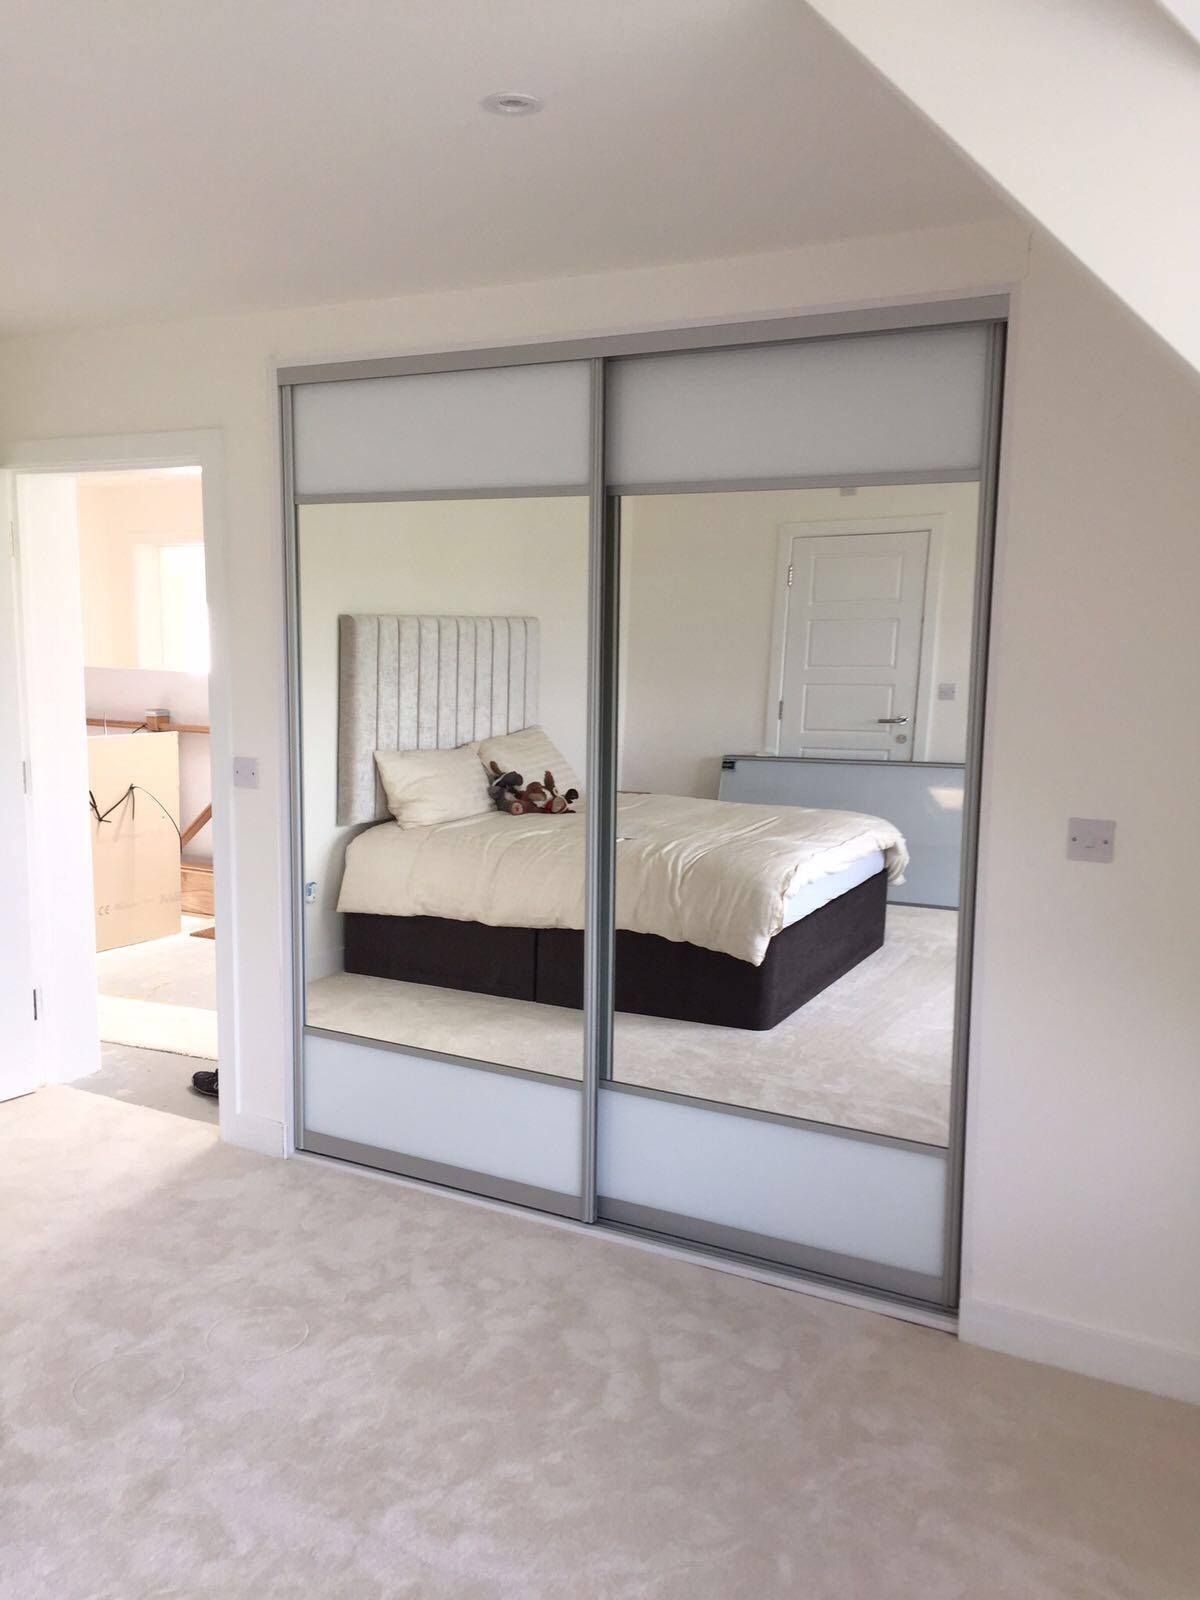 A Very Popular Sliding Wardrobe With Storage Built Inside To Suit Your  Needs.